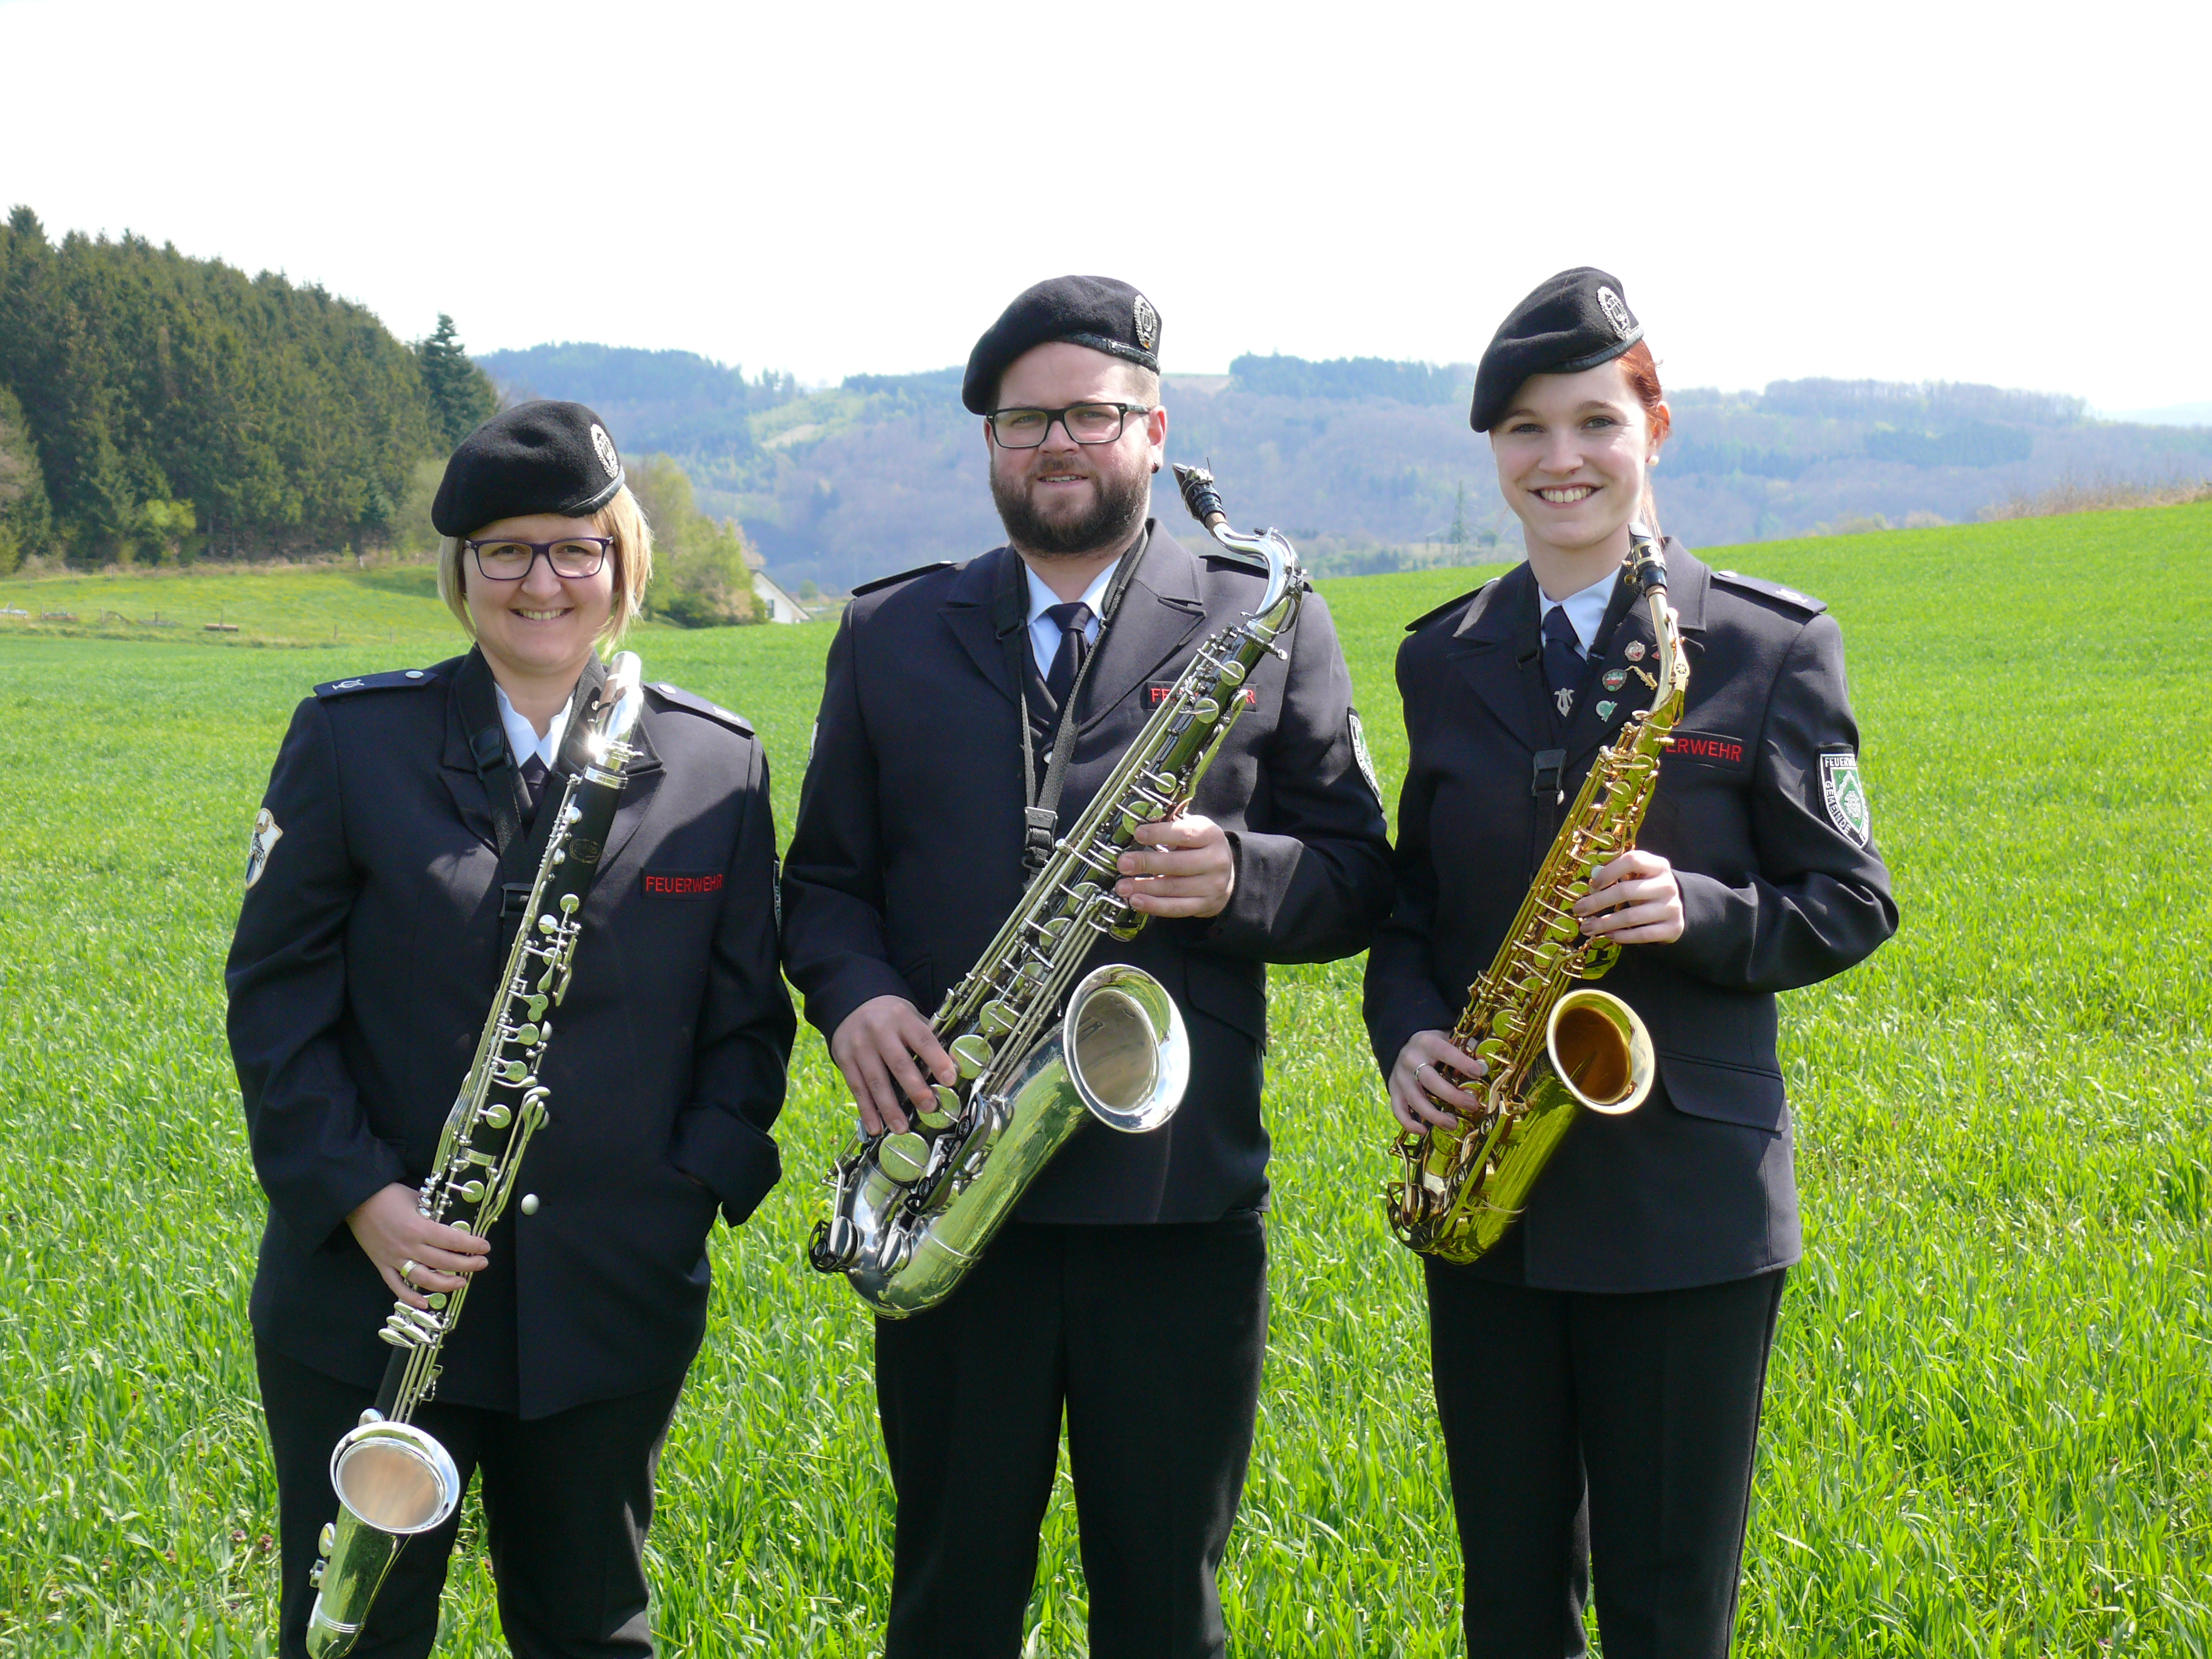 Unsere Saxophone & Tiefholz